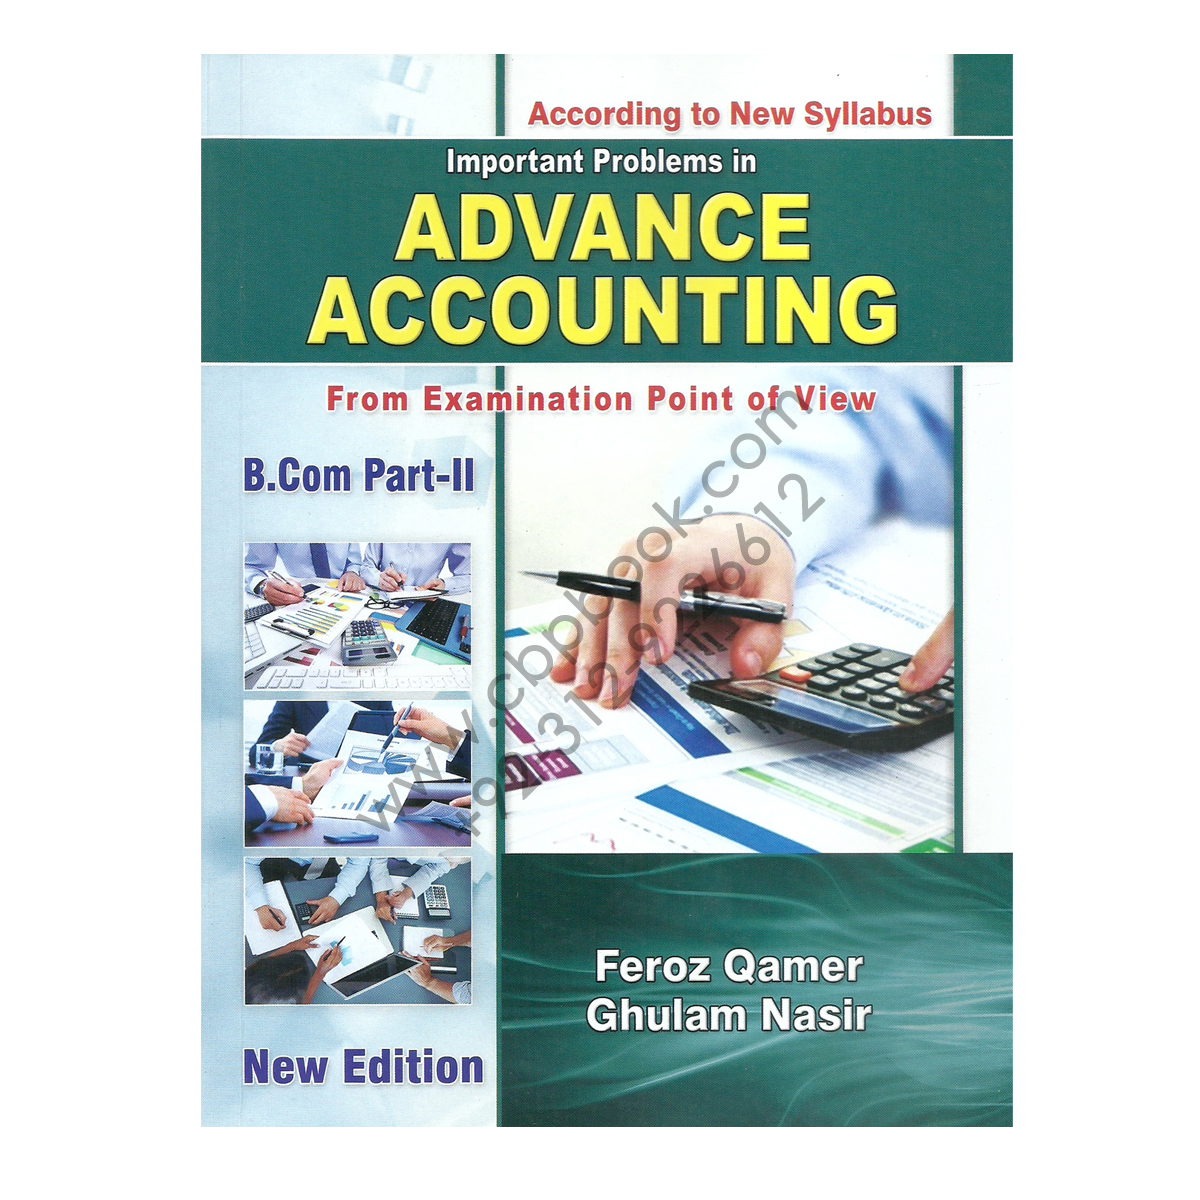 advance accounting View advance accounting research papers on academiaedu for free.